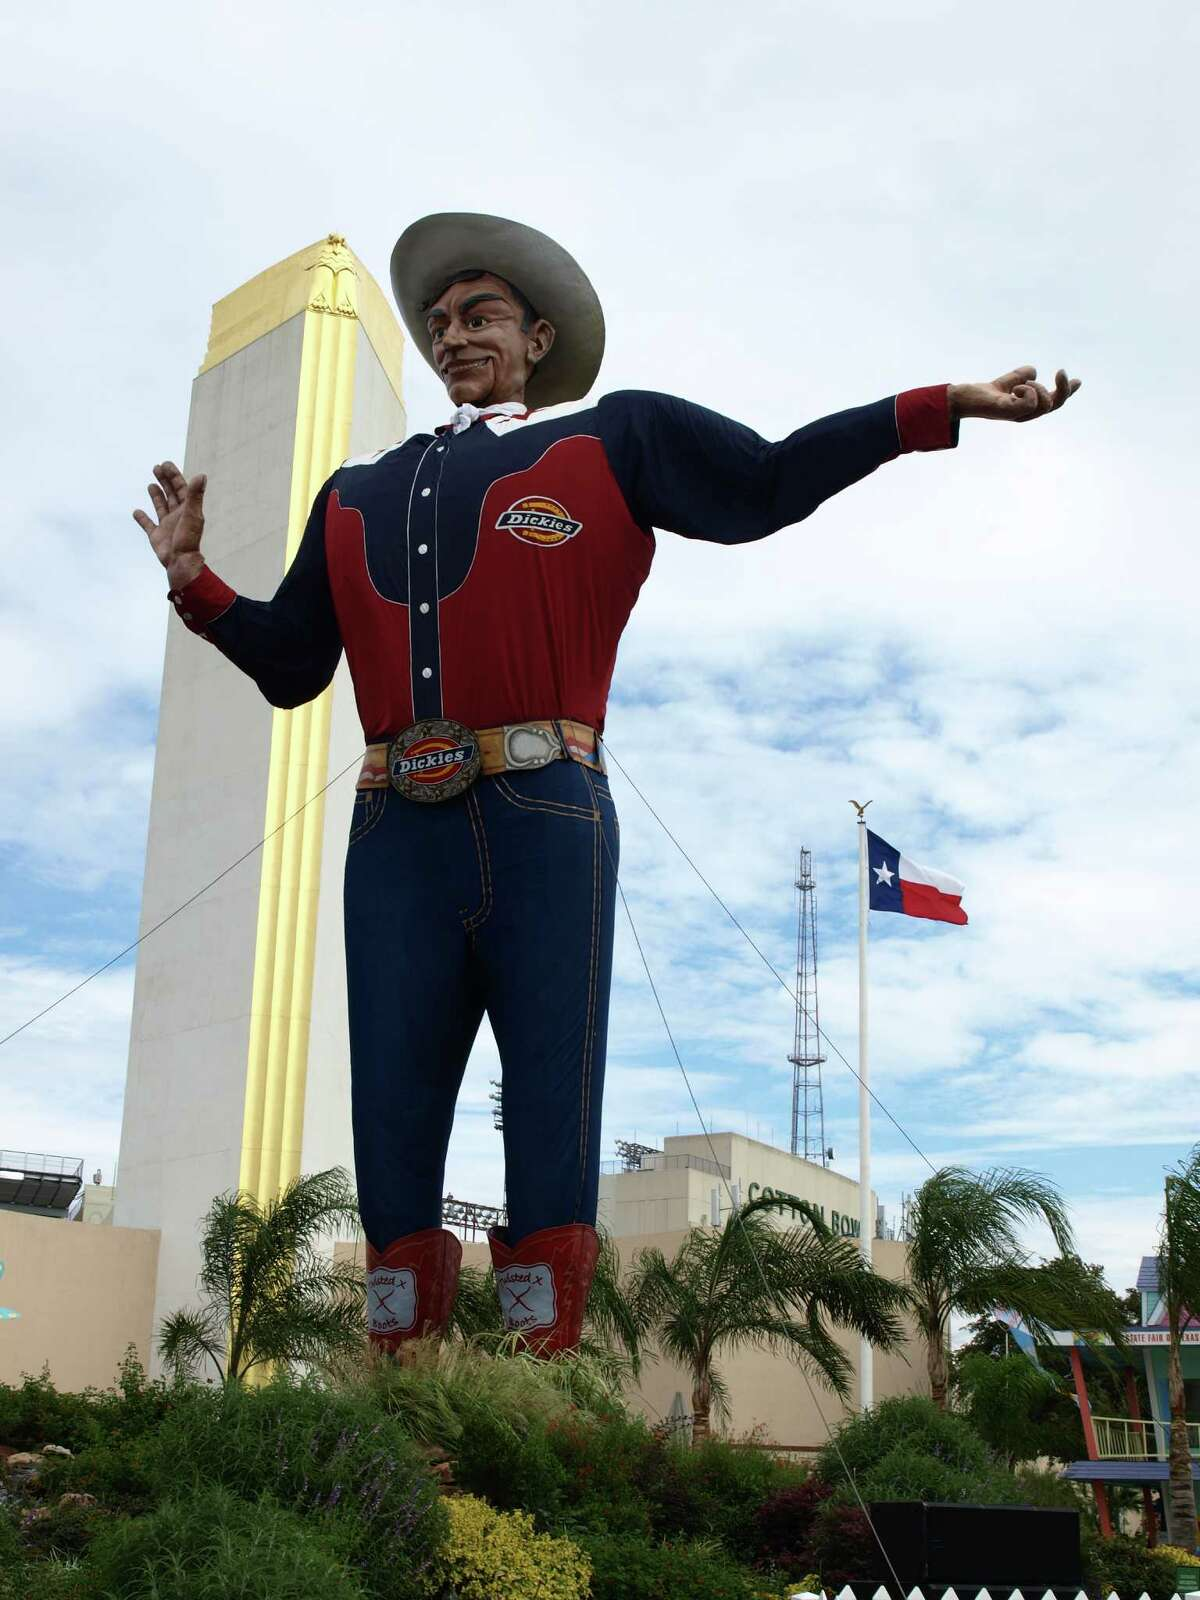 Big Tex weighs-in at 6,000 pounds and is 52 feet tall. He wears a 75-gallon hat and size 70 boots.